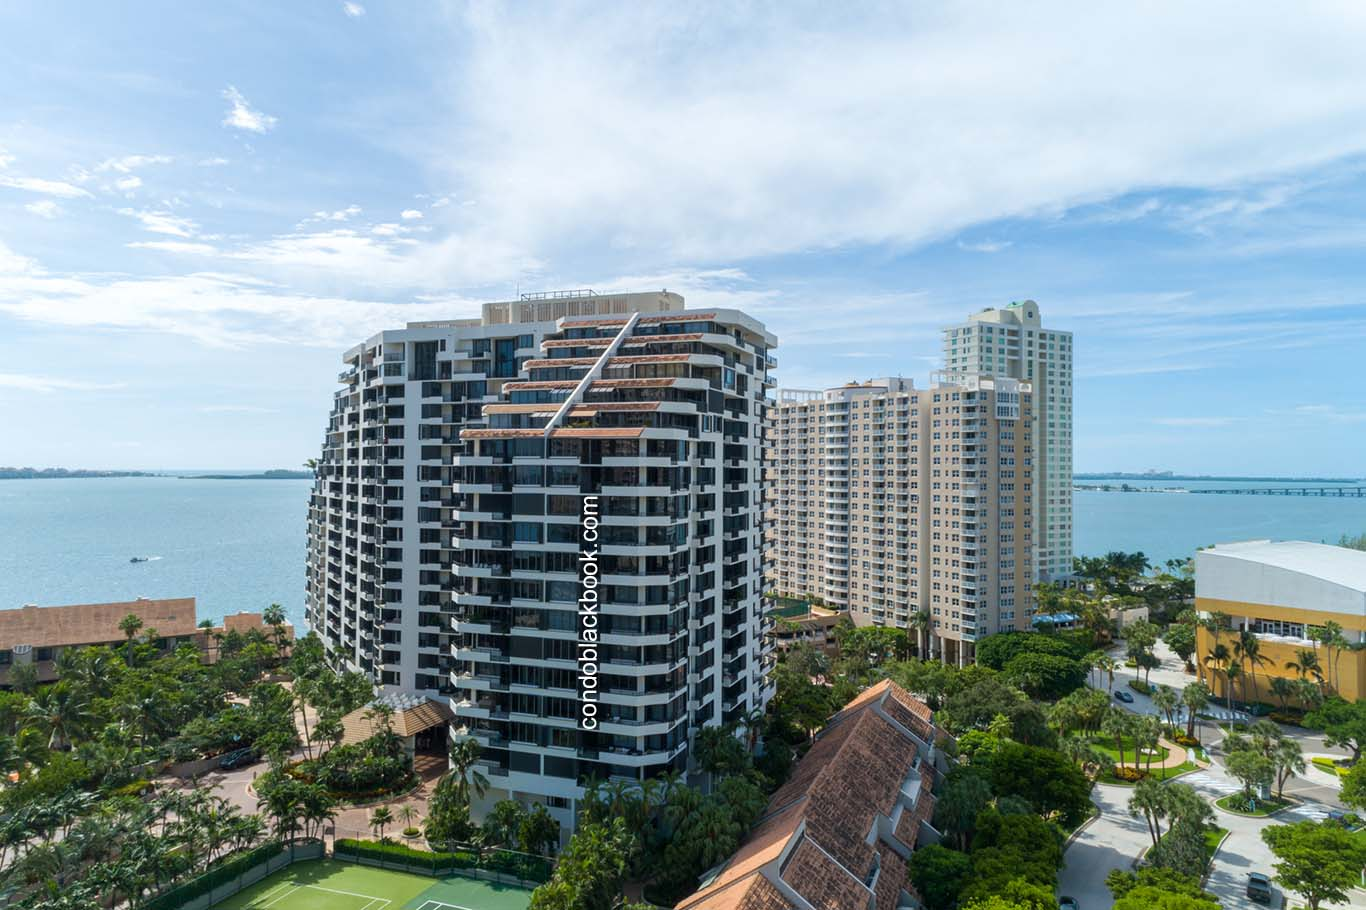 Brickell Key I Img1